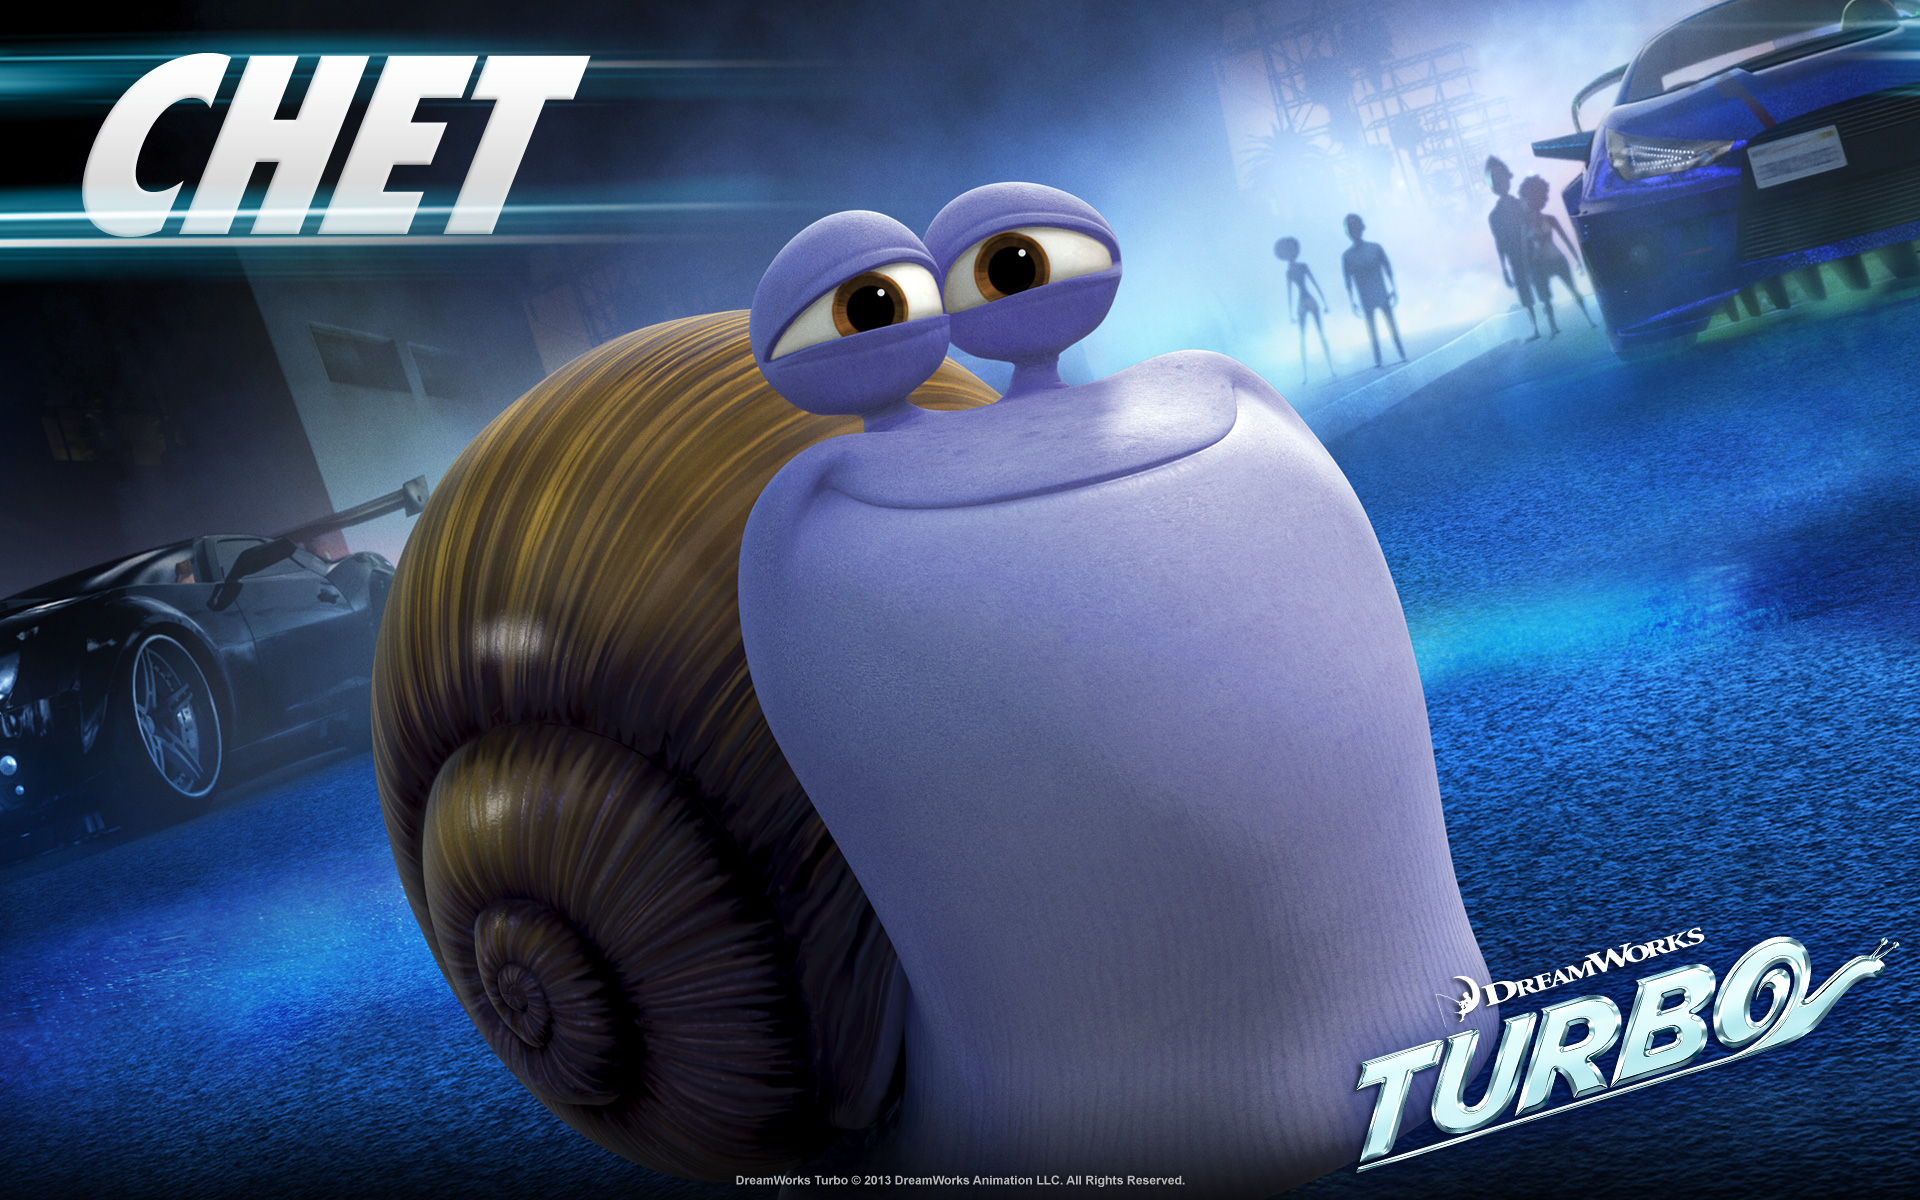 Download turbo movie wallpaper 36767 1920x1200 px high definition turbo movie wallpaper 36767 voltagebd Image collections